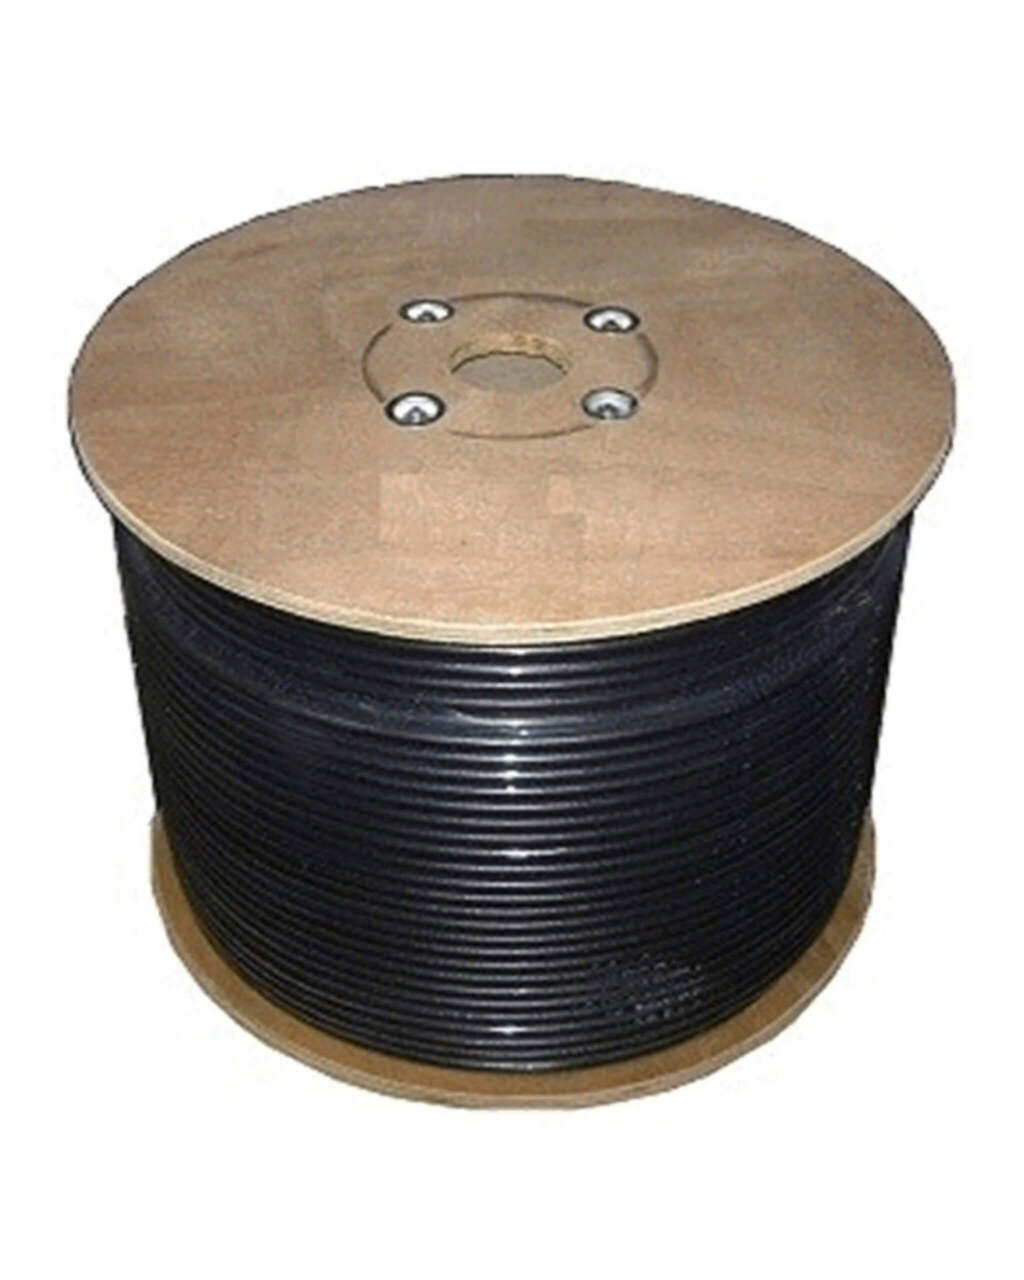 Bolton 240 Low Loss Cable - Black Priced Per Foot